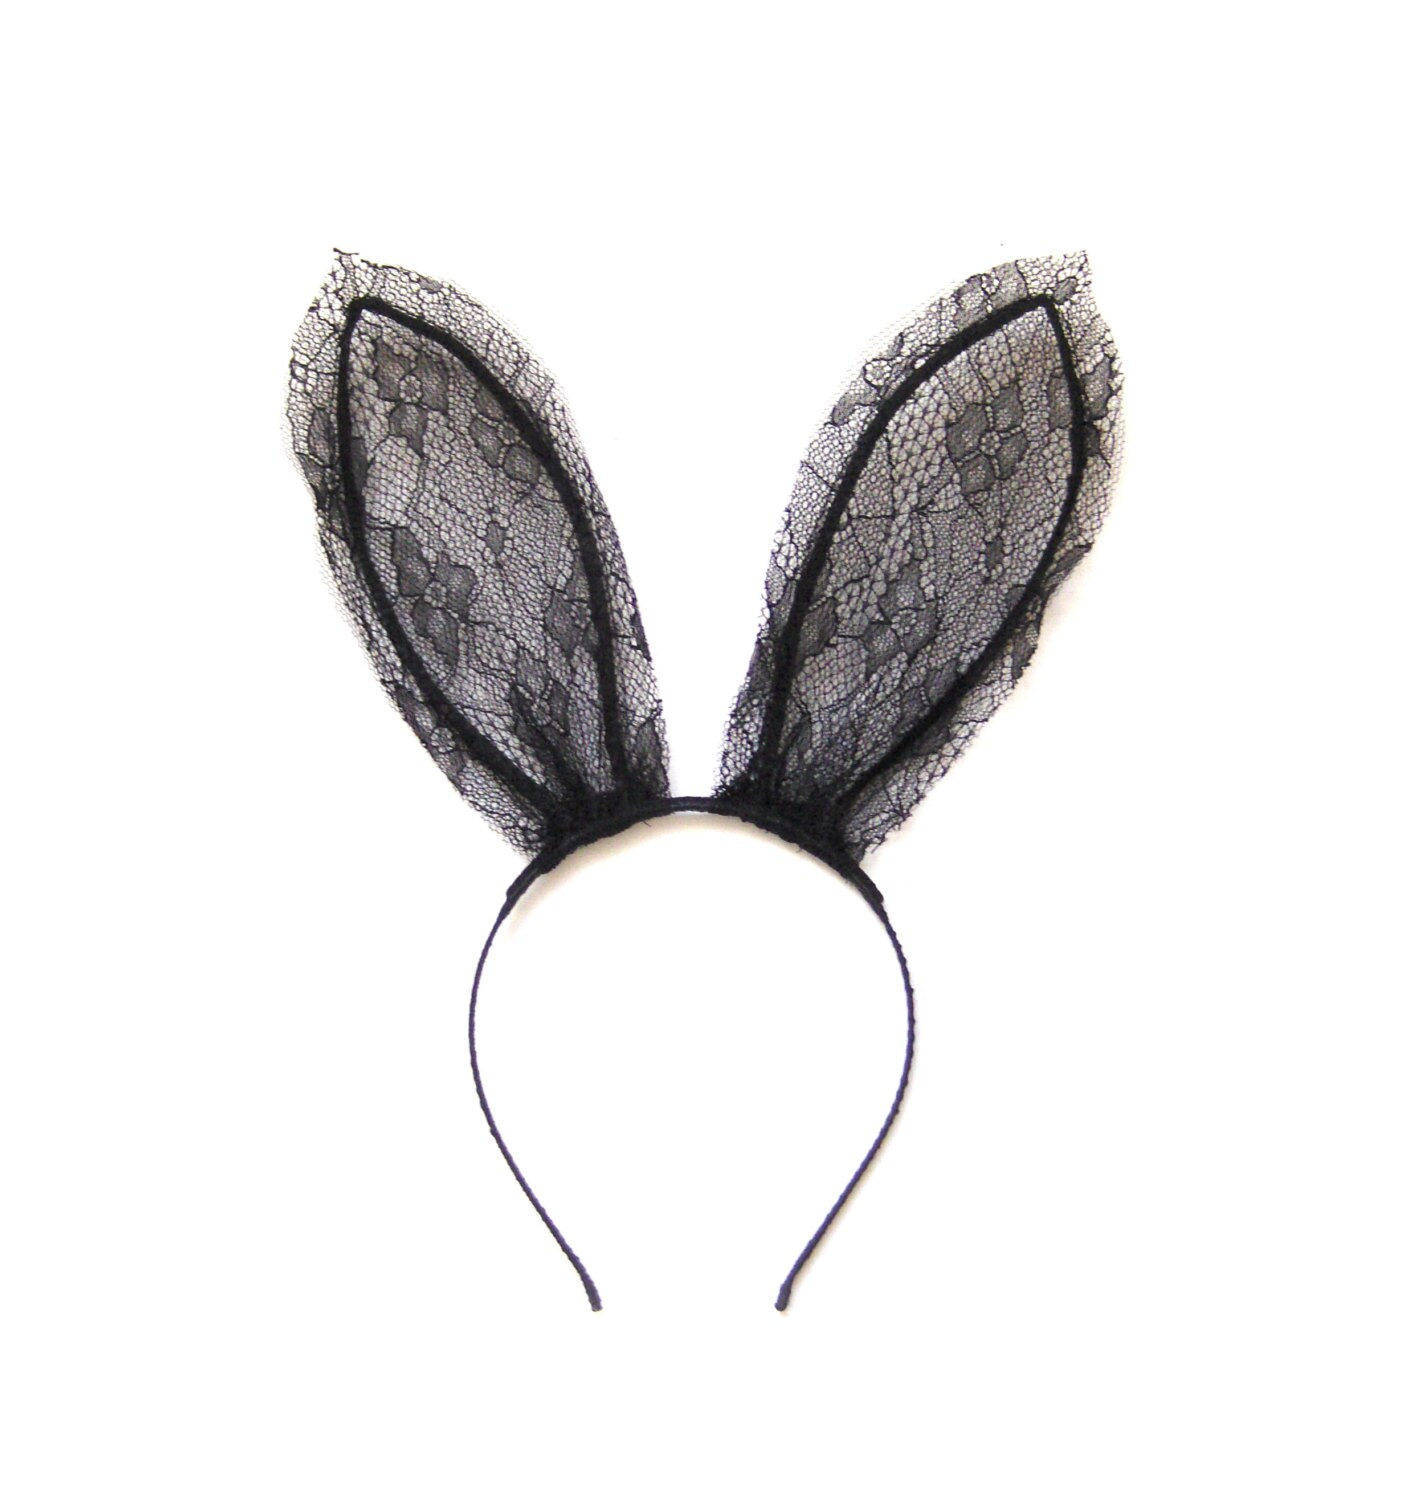 Bunny ears headband - Black bunny ears - Playboy bunny ears. Taffeta bunny rabbit ears headband, made from crisp shiny taffeta fabric. They make a change from lace bunny ears. Ears have a height of about 8 inches. Flexible bendy wire is threaded through for you to bend and shape the ears .